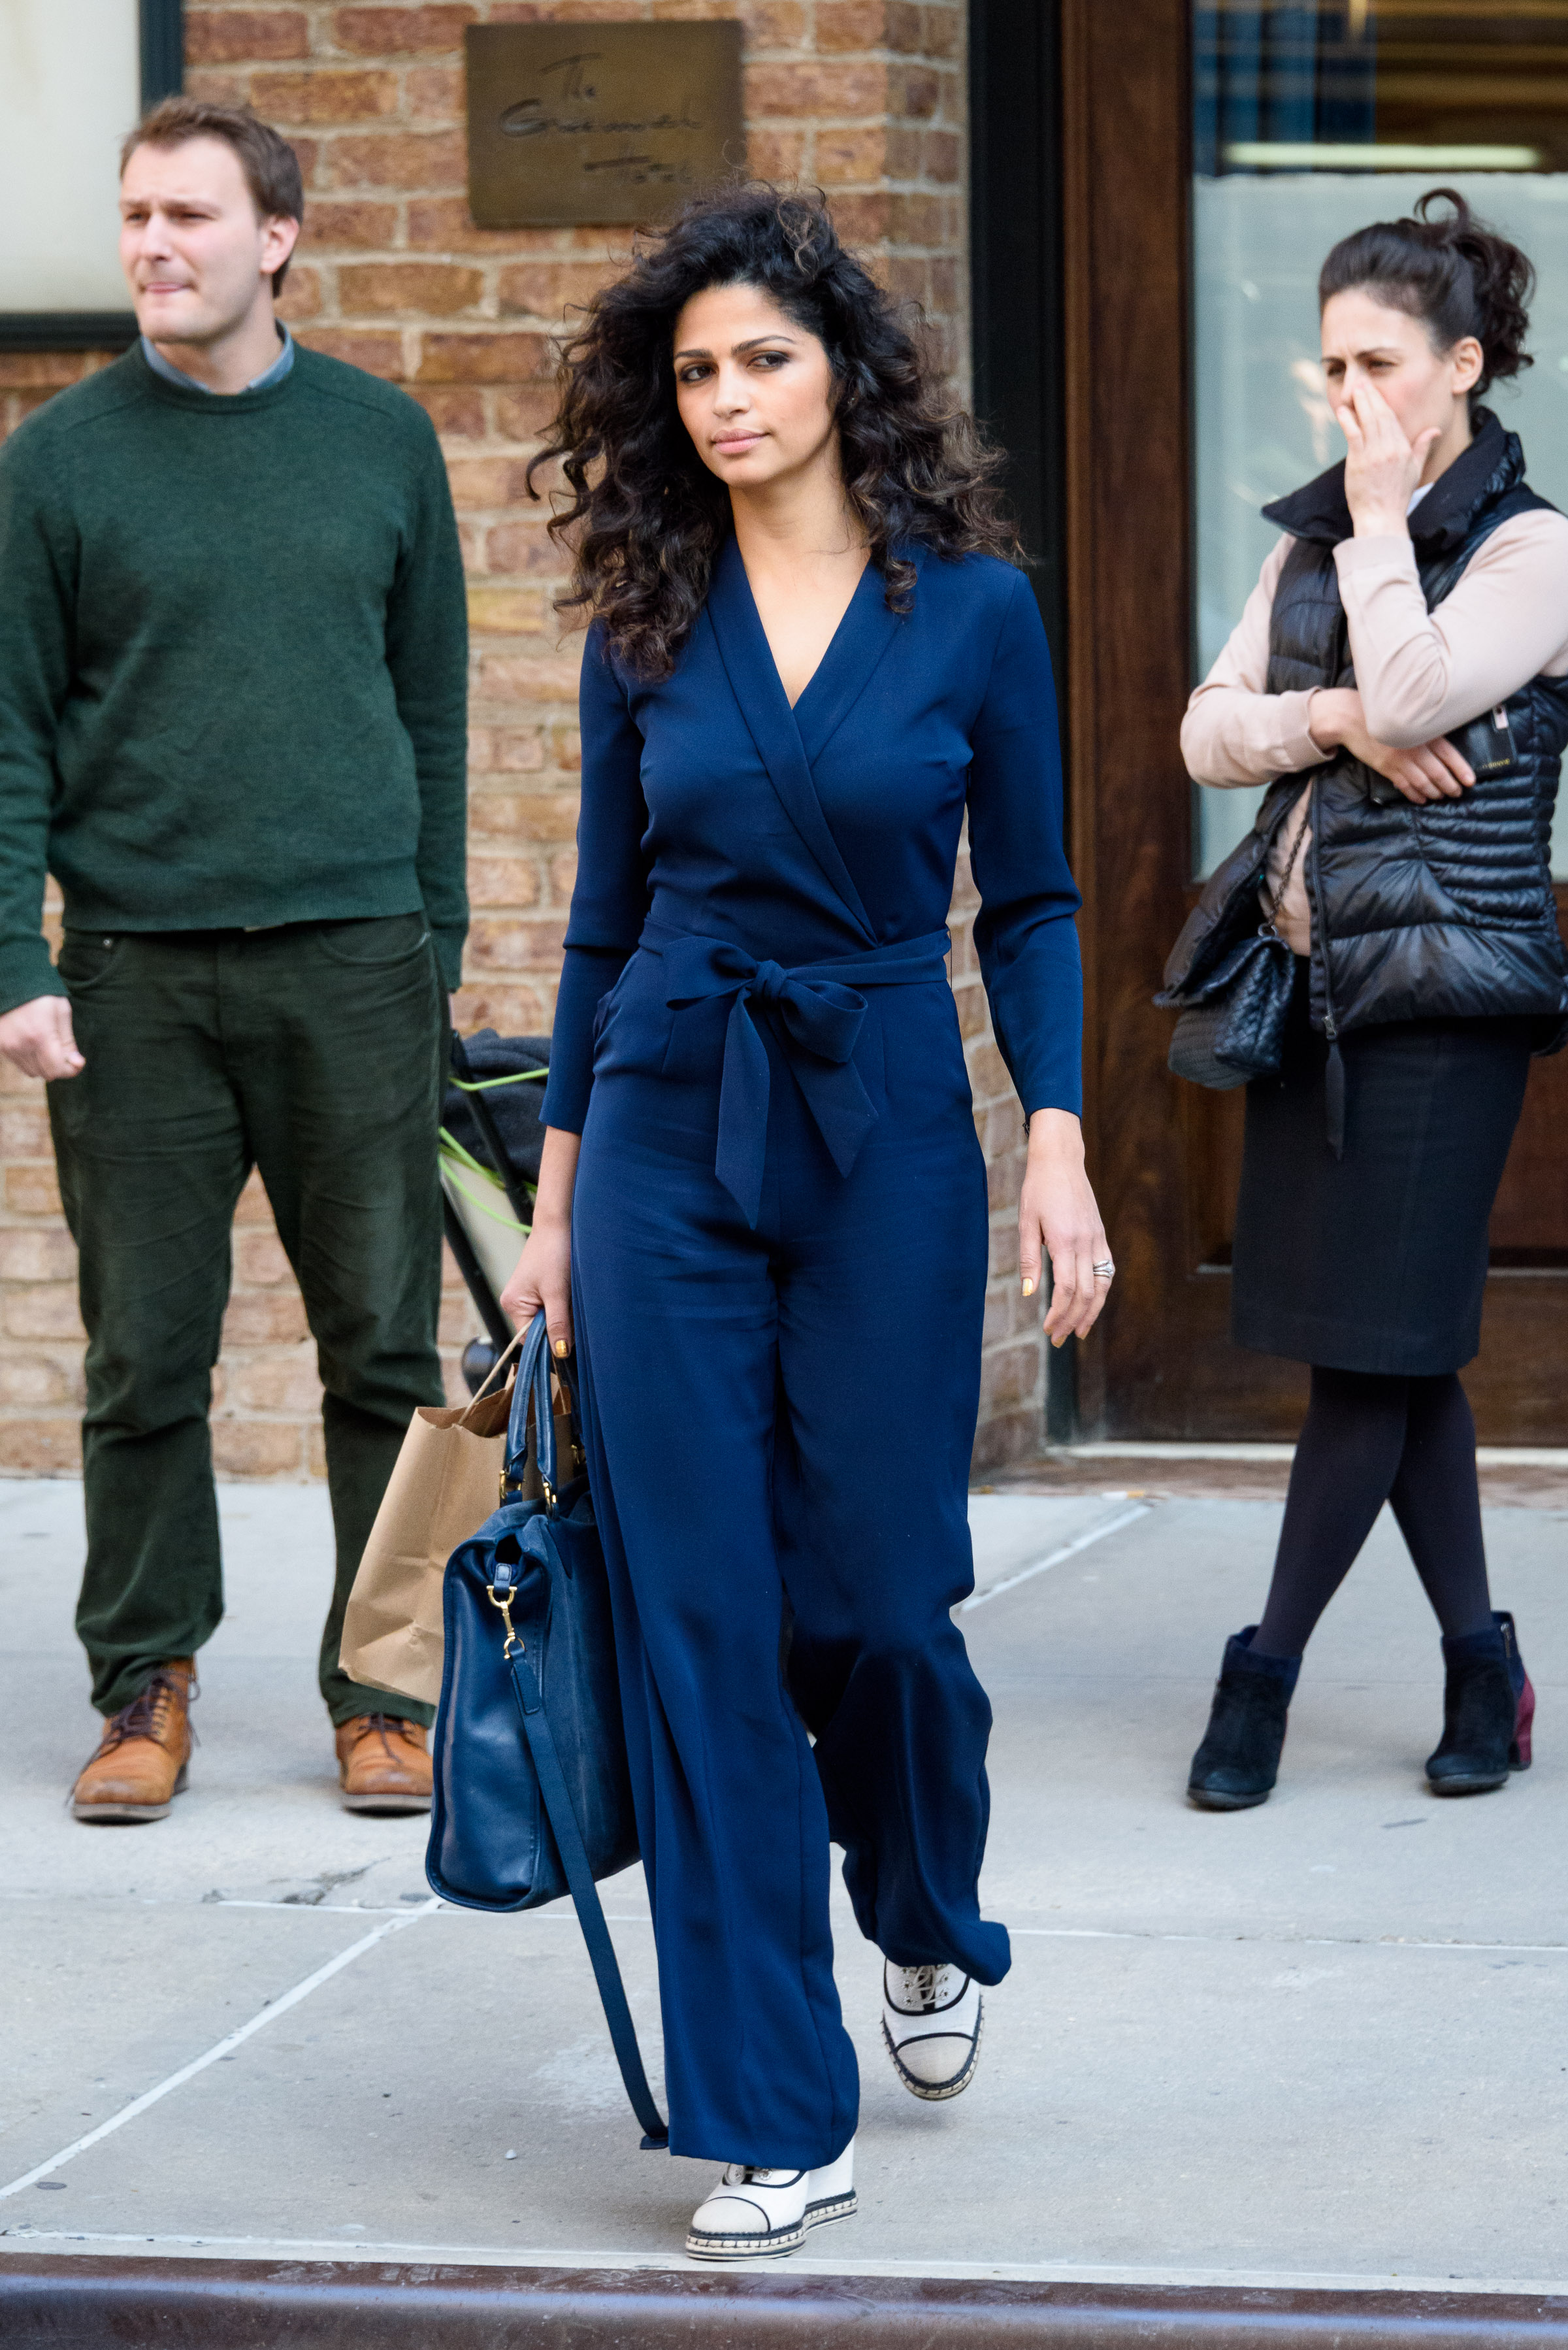 EXCLUSIVE Camila Alves Looks Relaxed in Blue Pant Suit